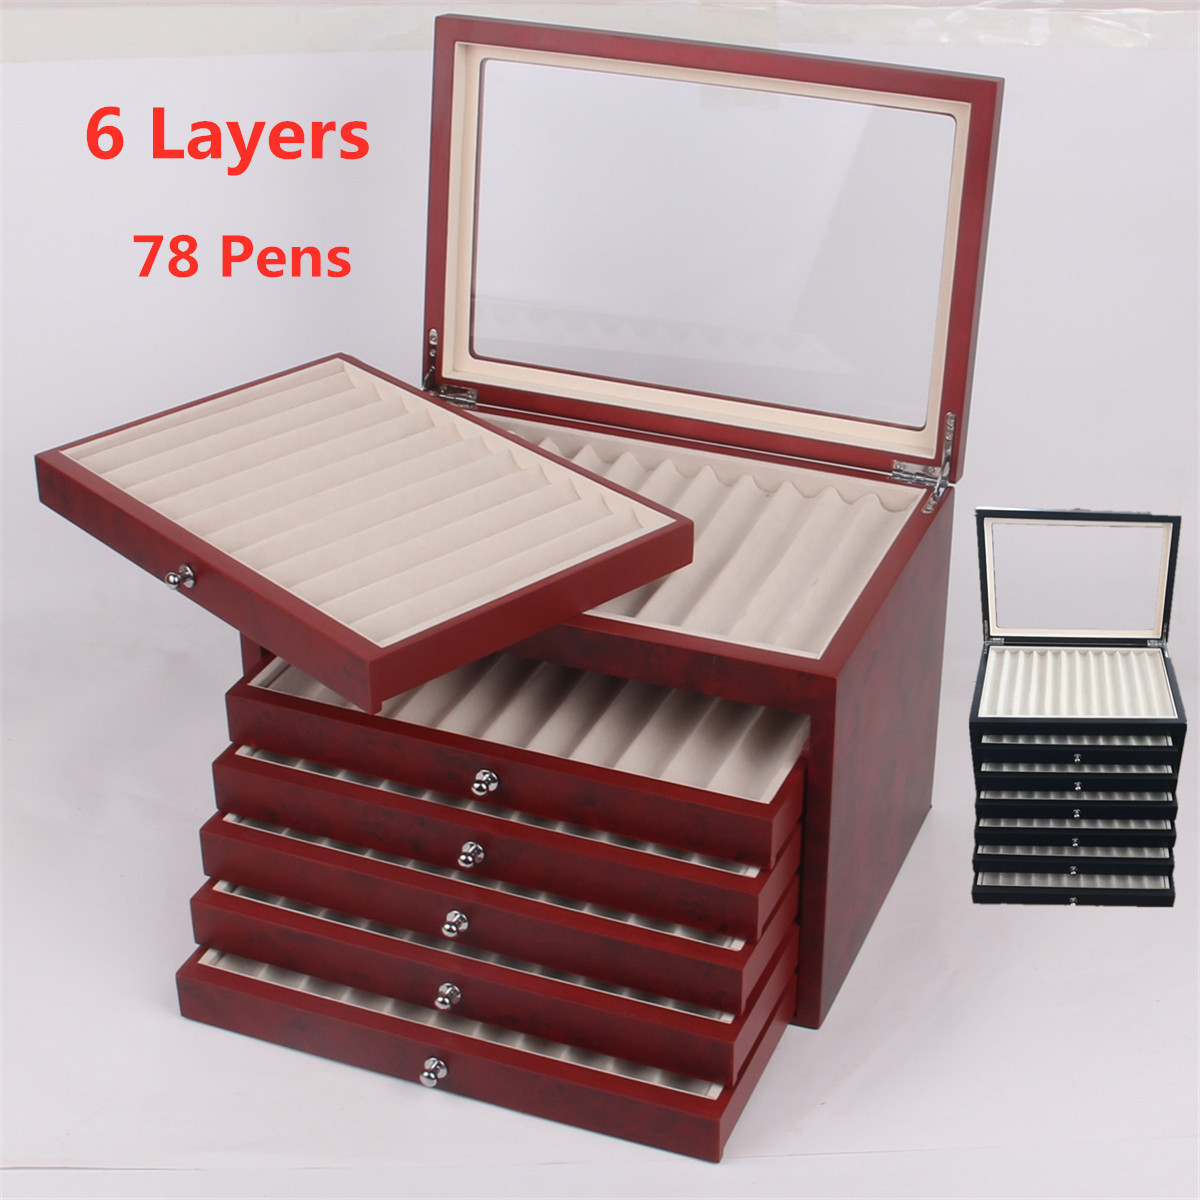 6 Layer 78 Pen Fountain Wood Display Case Holder Large Capacity Wooden Pen Box Storage Collector Organizer Box Black Red6 Layer 78 Pen Fountain Wood Display Case Holder Large Capacity Wooden Pen Box Storage Collector Organizer Box Black Red